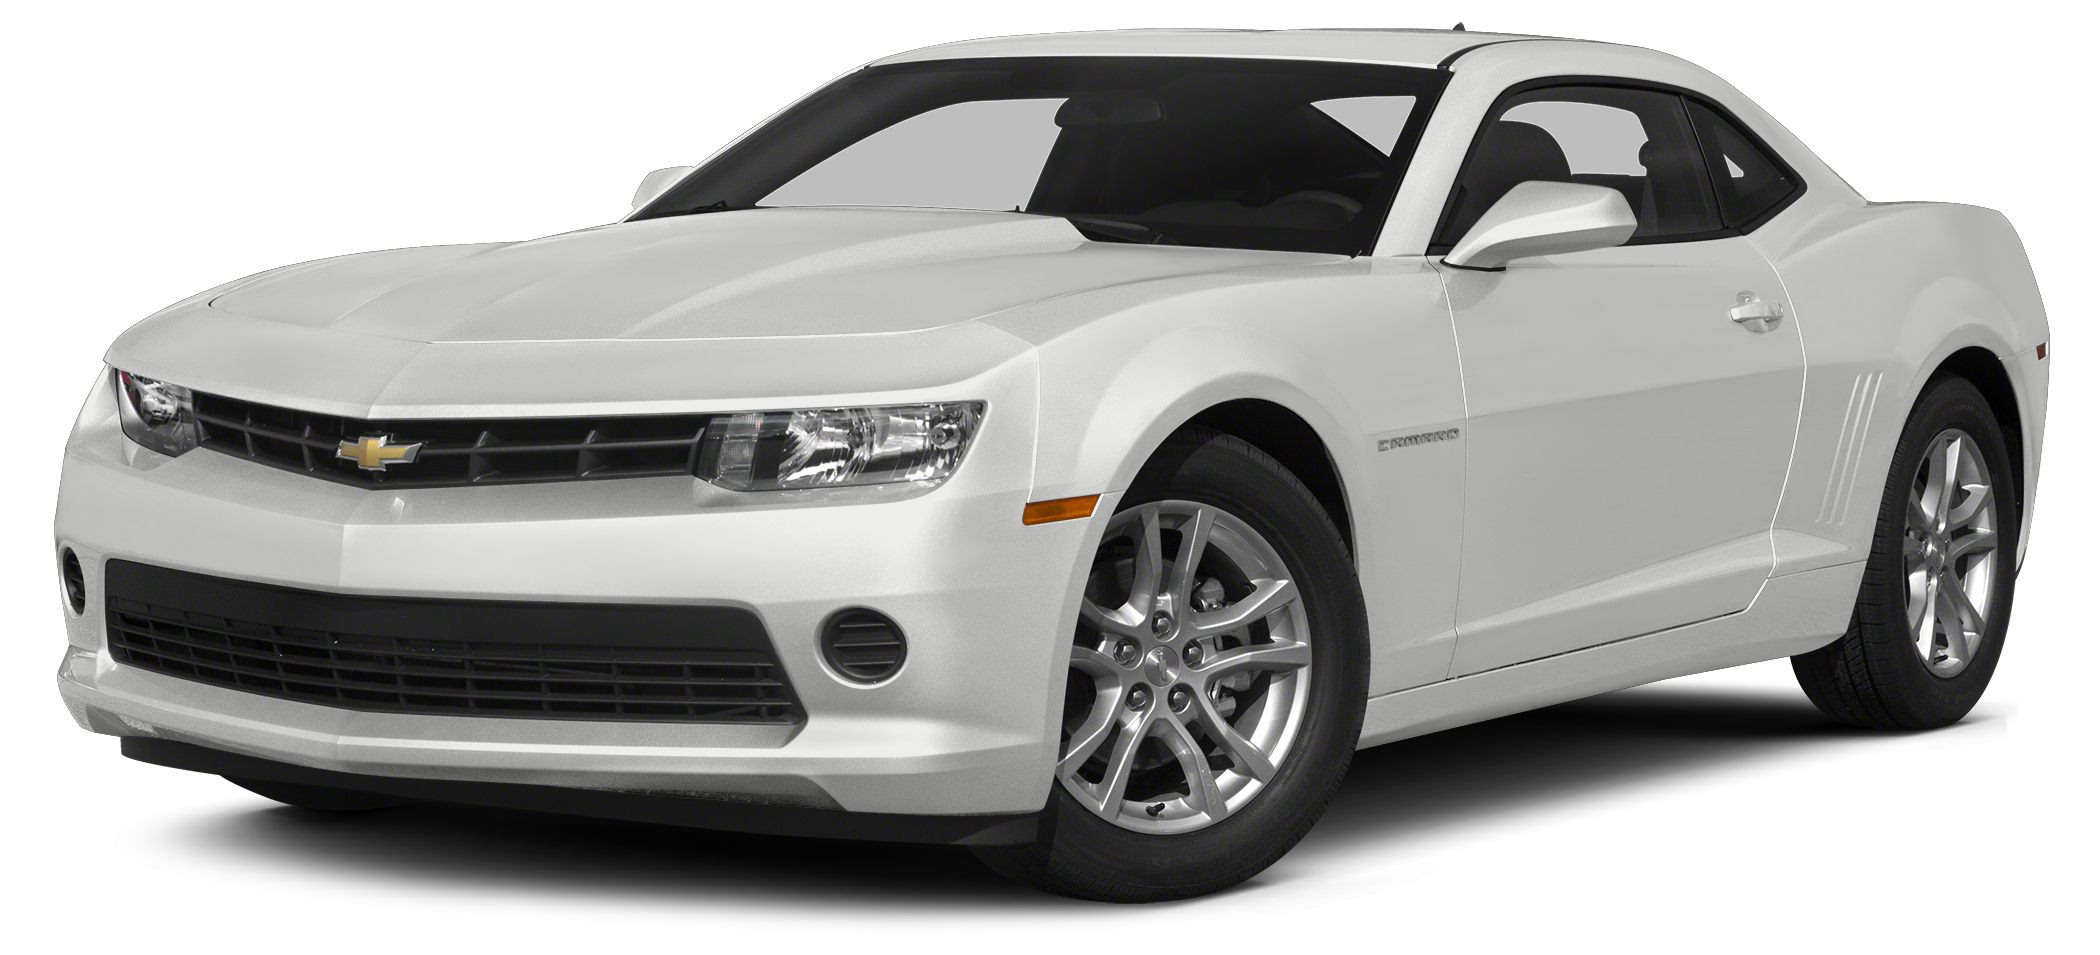 2014 Chevrolet Camaro 1LT ONLY 5965 Miles FUEL EFFICIENT 28 MPG Hwy17 MPG City Sunroof Overhe